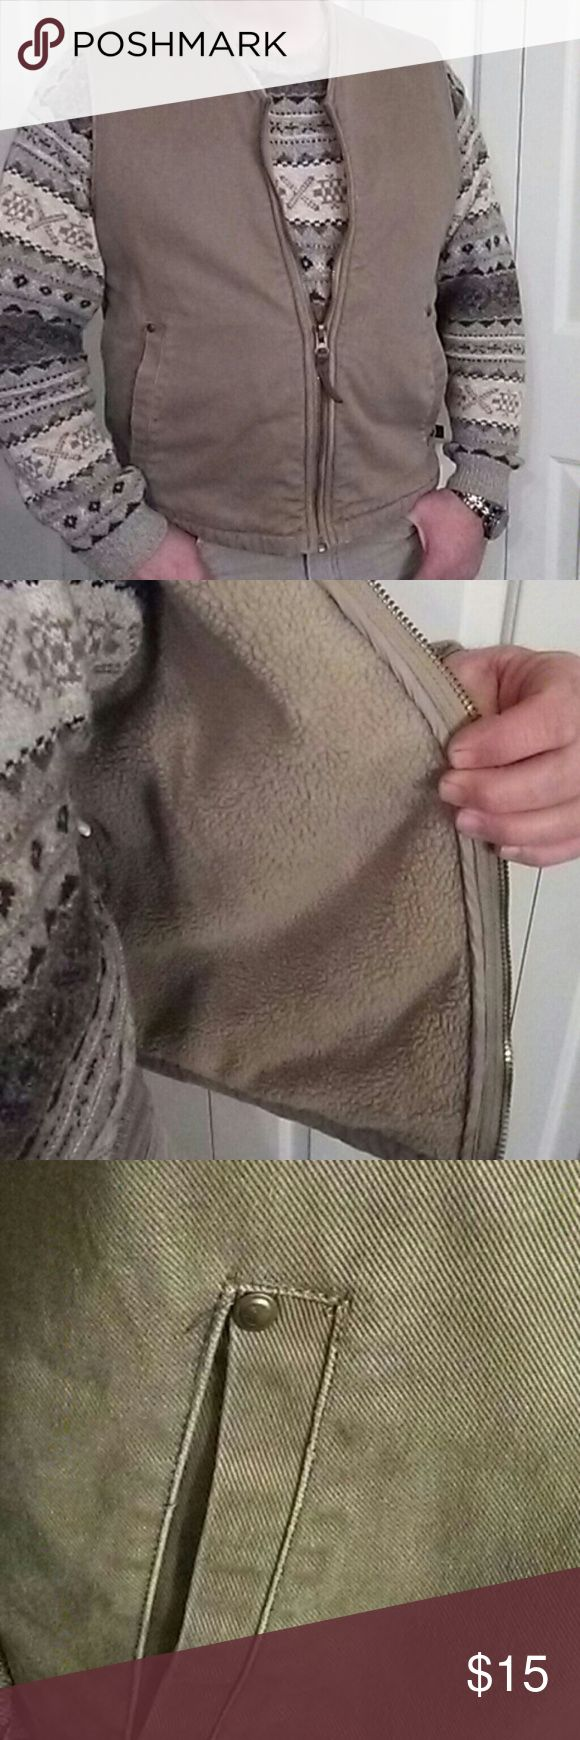 Woolrich Sherpa Lined Vest Heavy duty tan denim fabric with matching sherpa lining. Looks great with a sweater as shown.This vest gives added warmth when a coat is too much. Looks great too. Nice condition.Versatile. Woolrich Jackets & Coats Vests